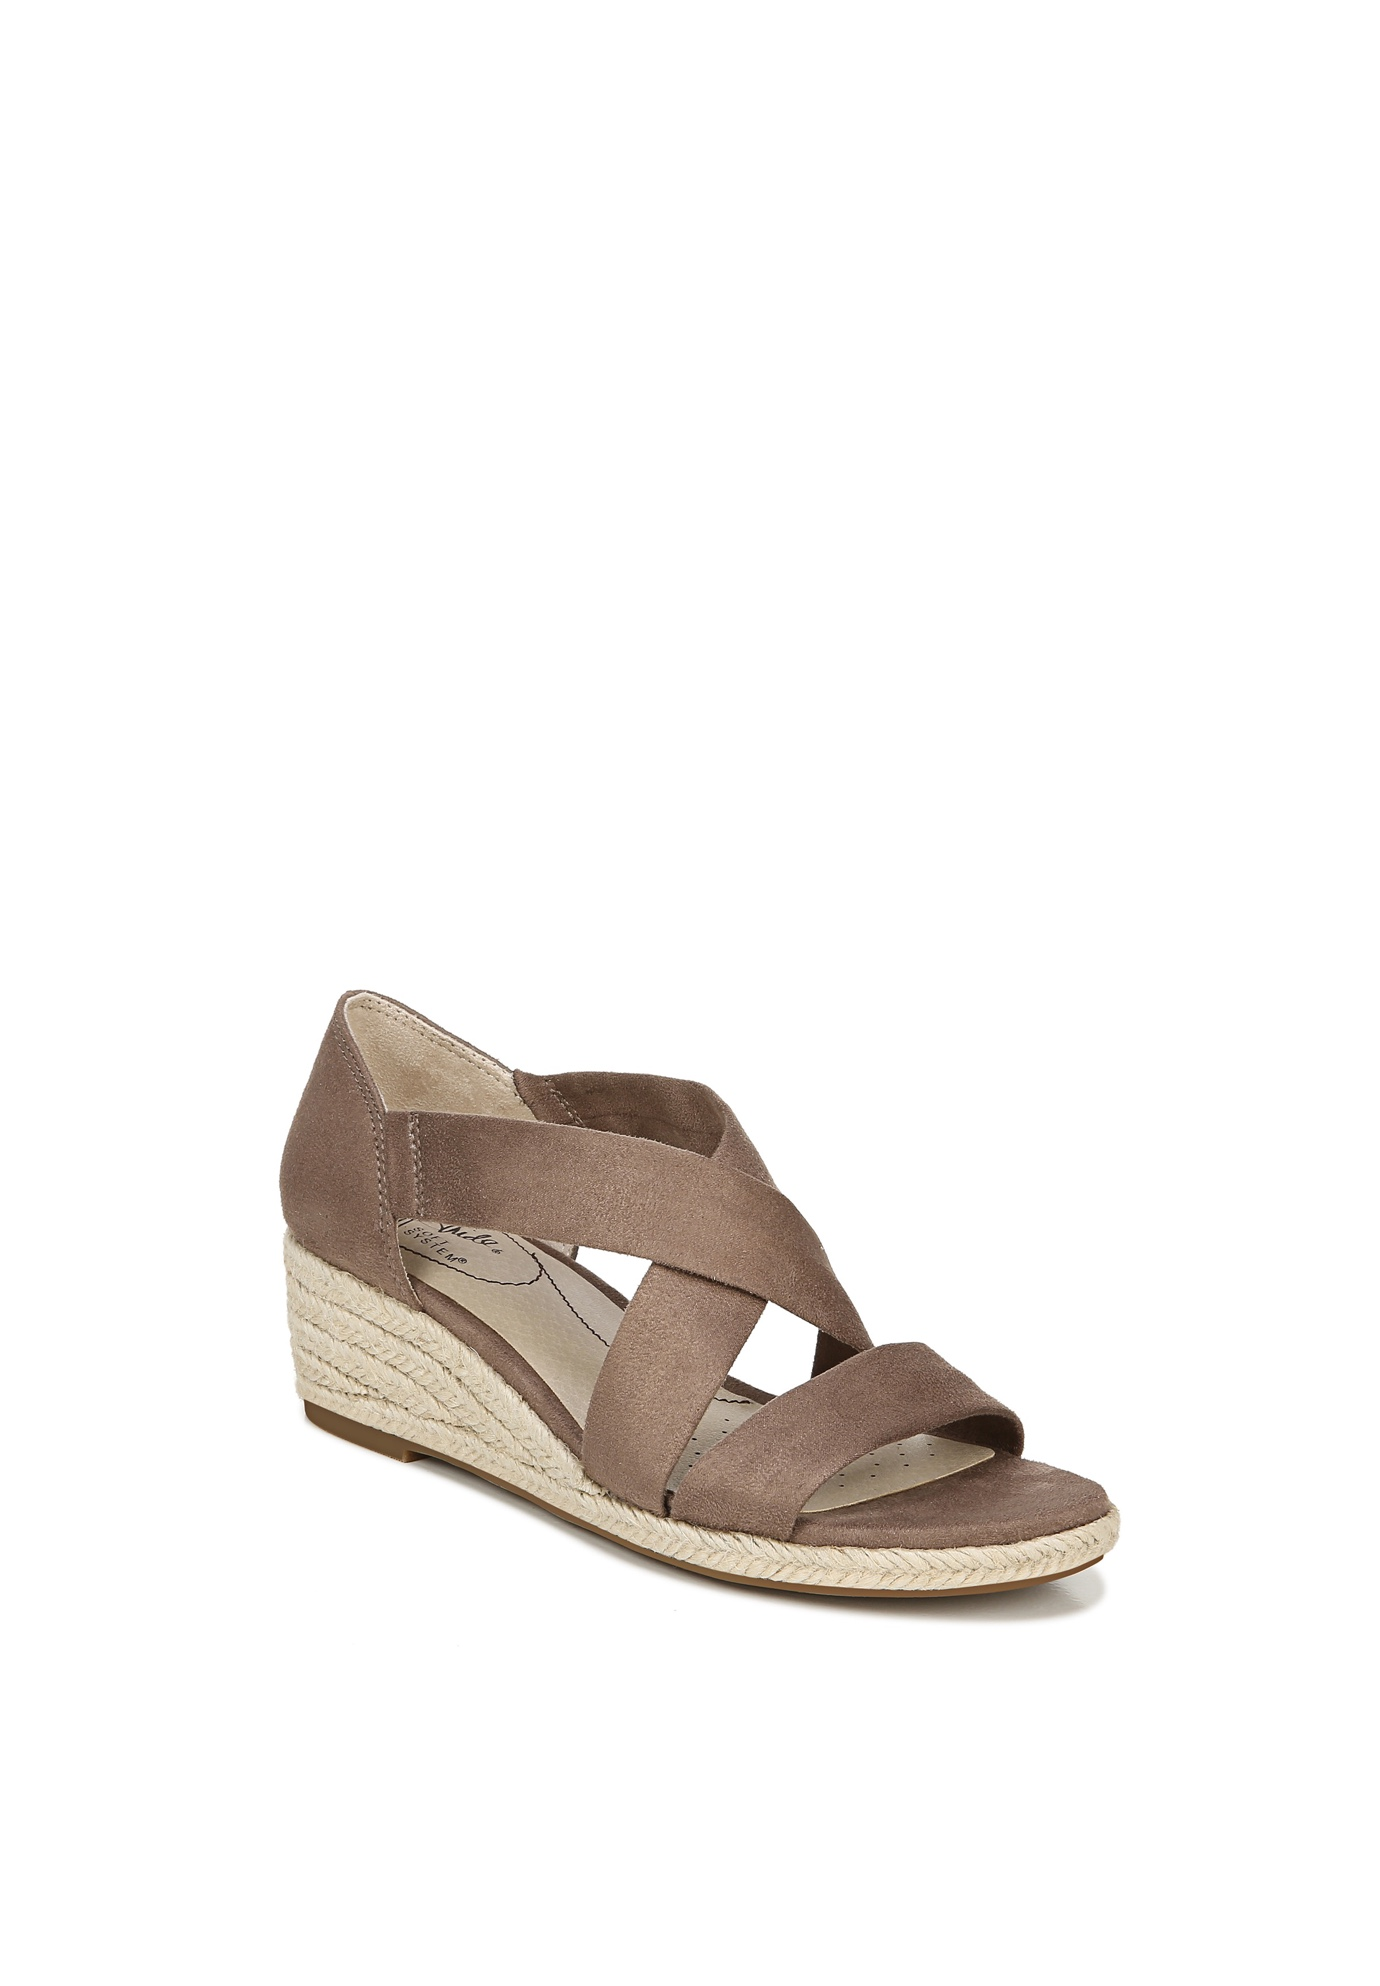 Siesta Wedge Espadrilles by LifeStride,